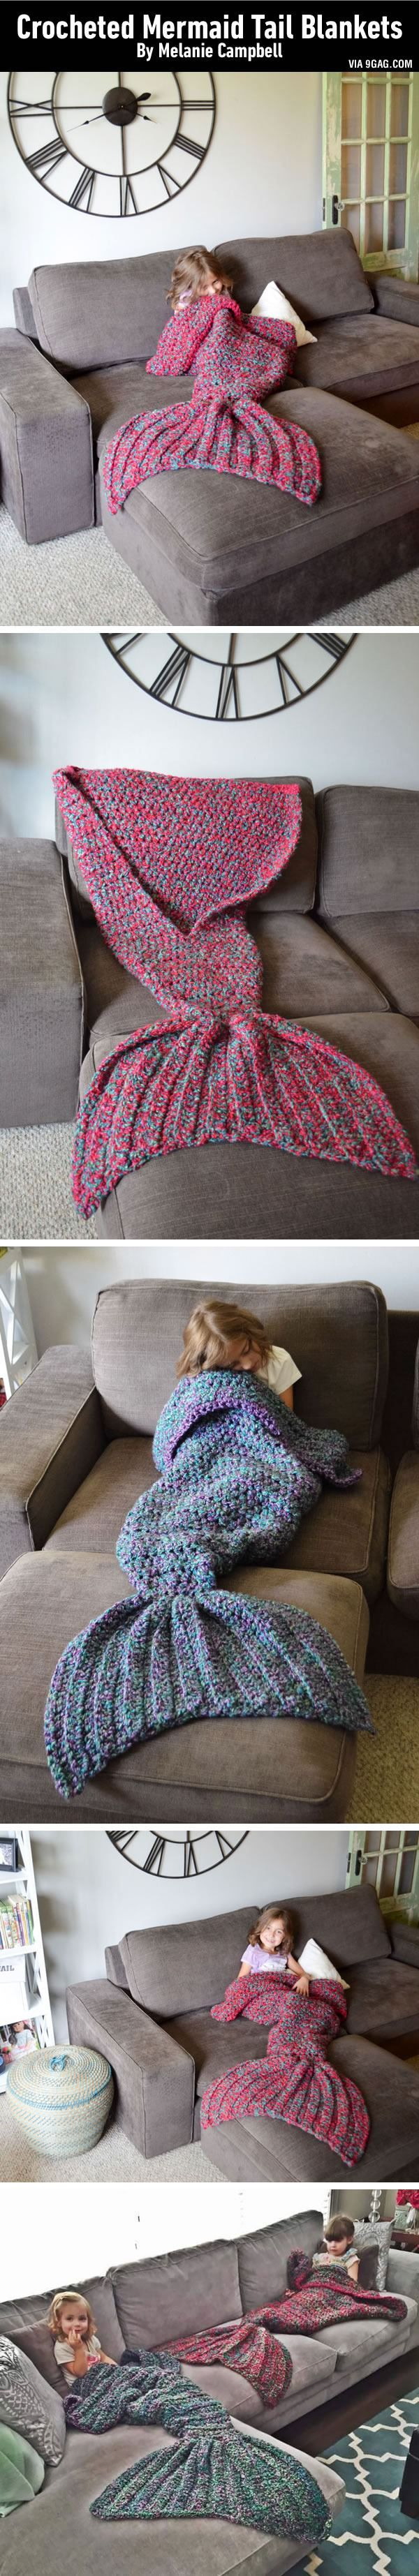 My dream of becoming a Mermaid and keeping myself warm has finally come true. LINK: beginner's crochet pattern this was inspired by. Can be found on Etsy at CassJamesDesigns but orders are backed up until after the holidays.